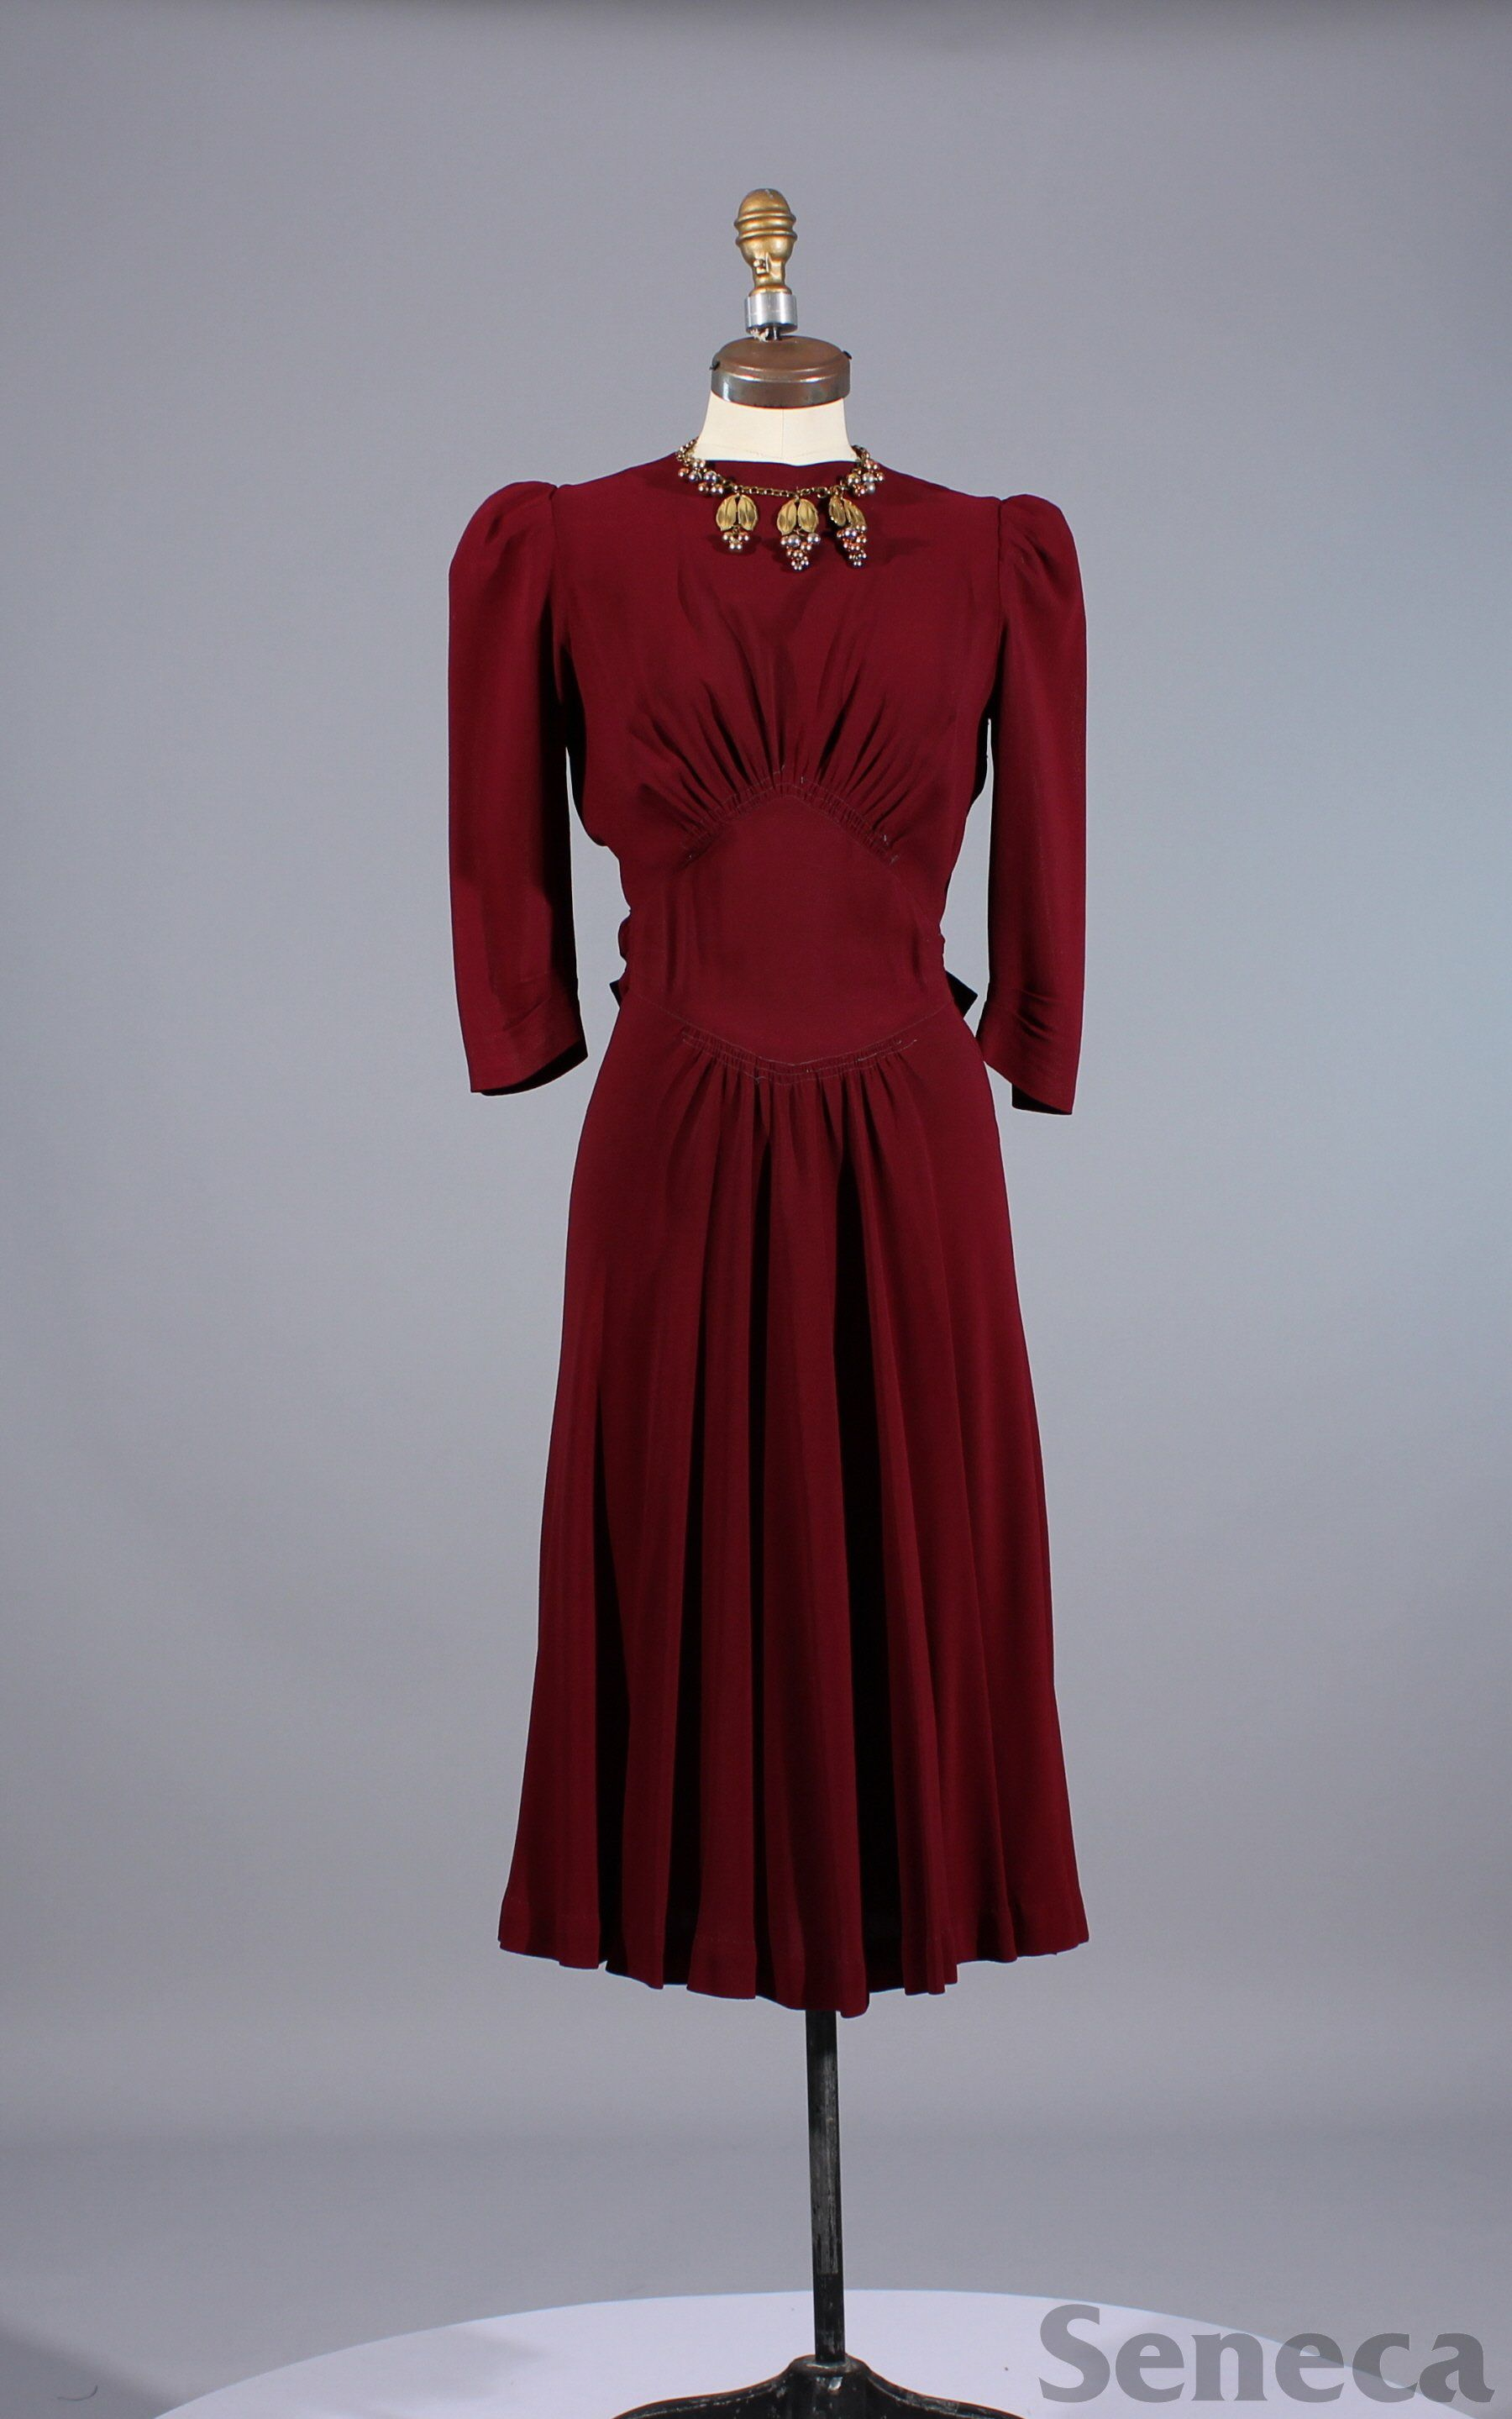 1930s Dress With Attached Jewellry 1940s Fashion Dresses Vintage Fashion 1930s Romantic Dresses Vintage [ 2879 x 1800 Pixel ]